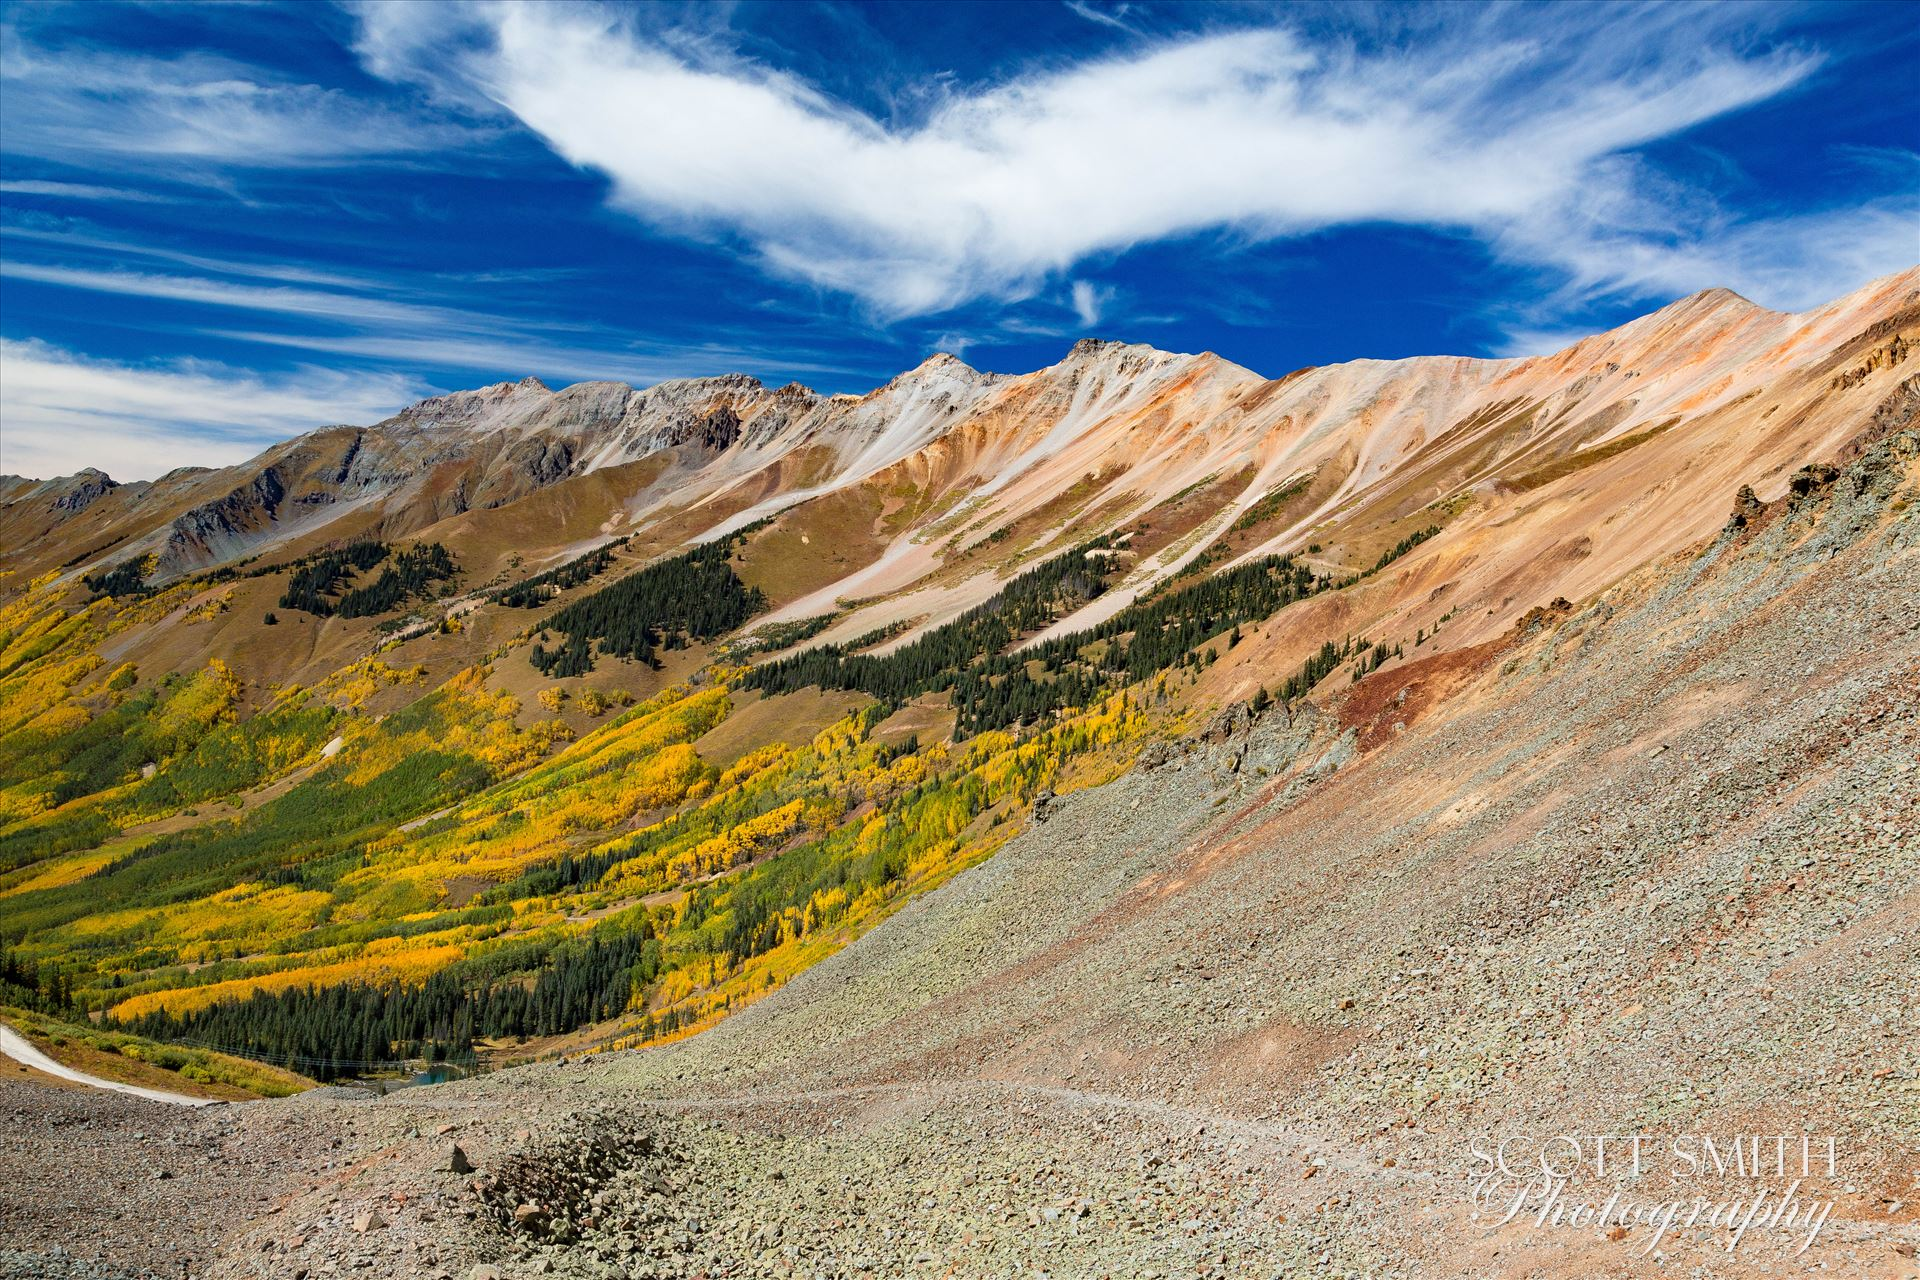 Ophir Pass 1 - Just west of the Ophir Pass summit, between Ouray and Silverton Colorado in the fall. by Scott Smith Photos